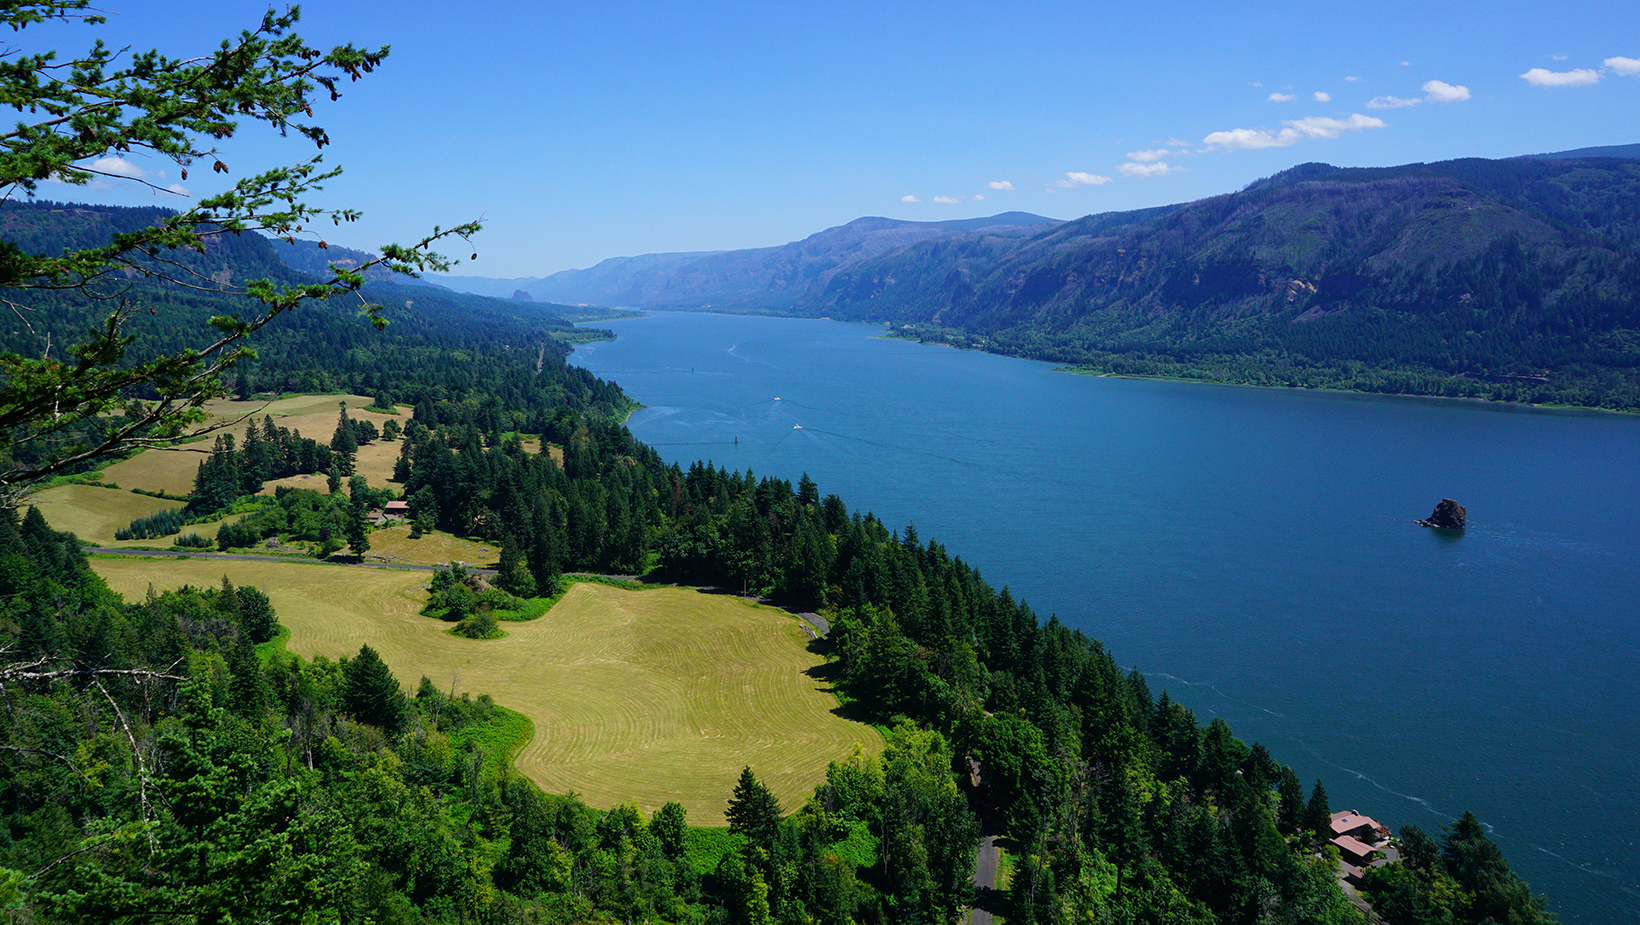 An expansive view of the Columbia River Gorge looking eastward from Cape Horn